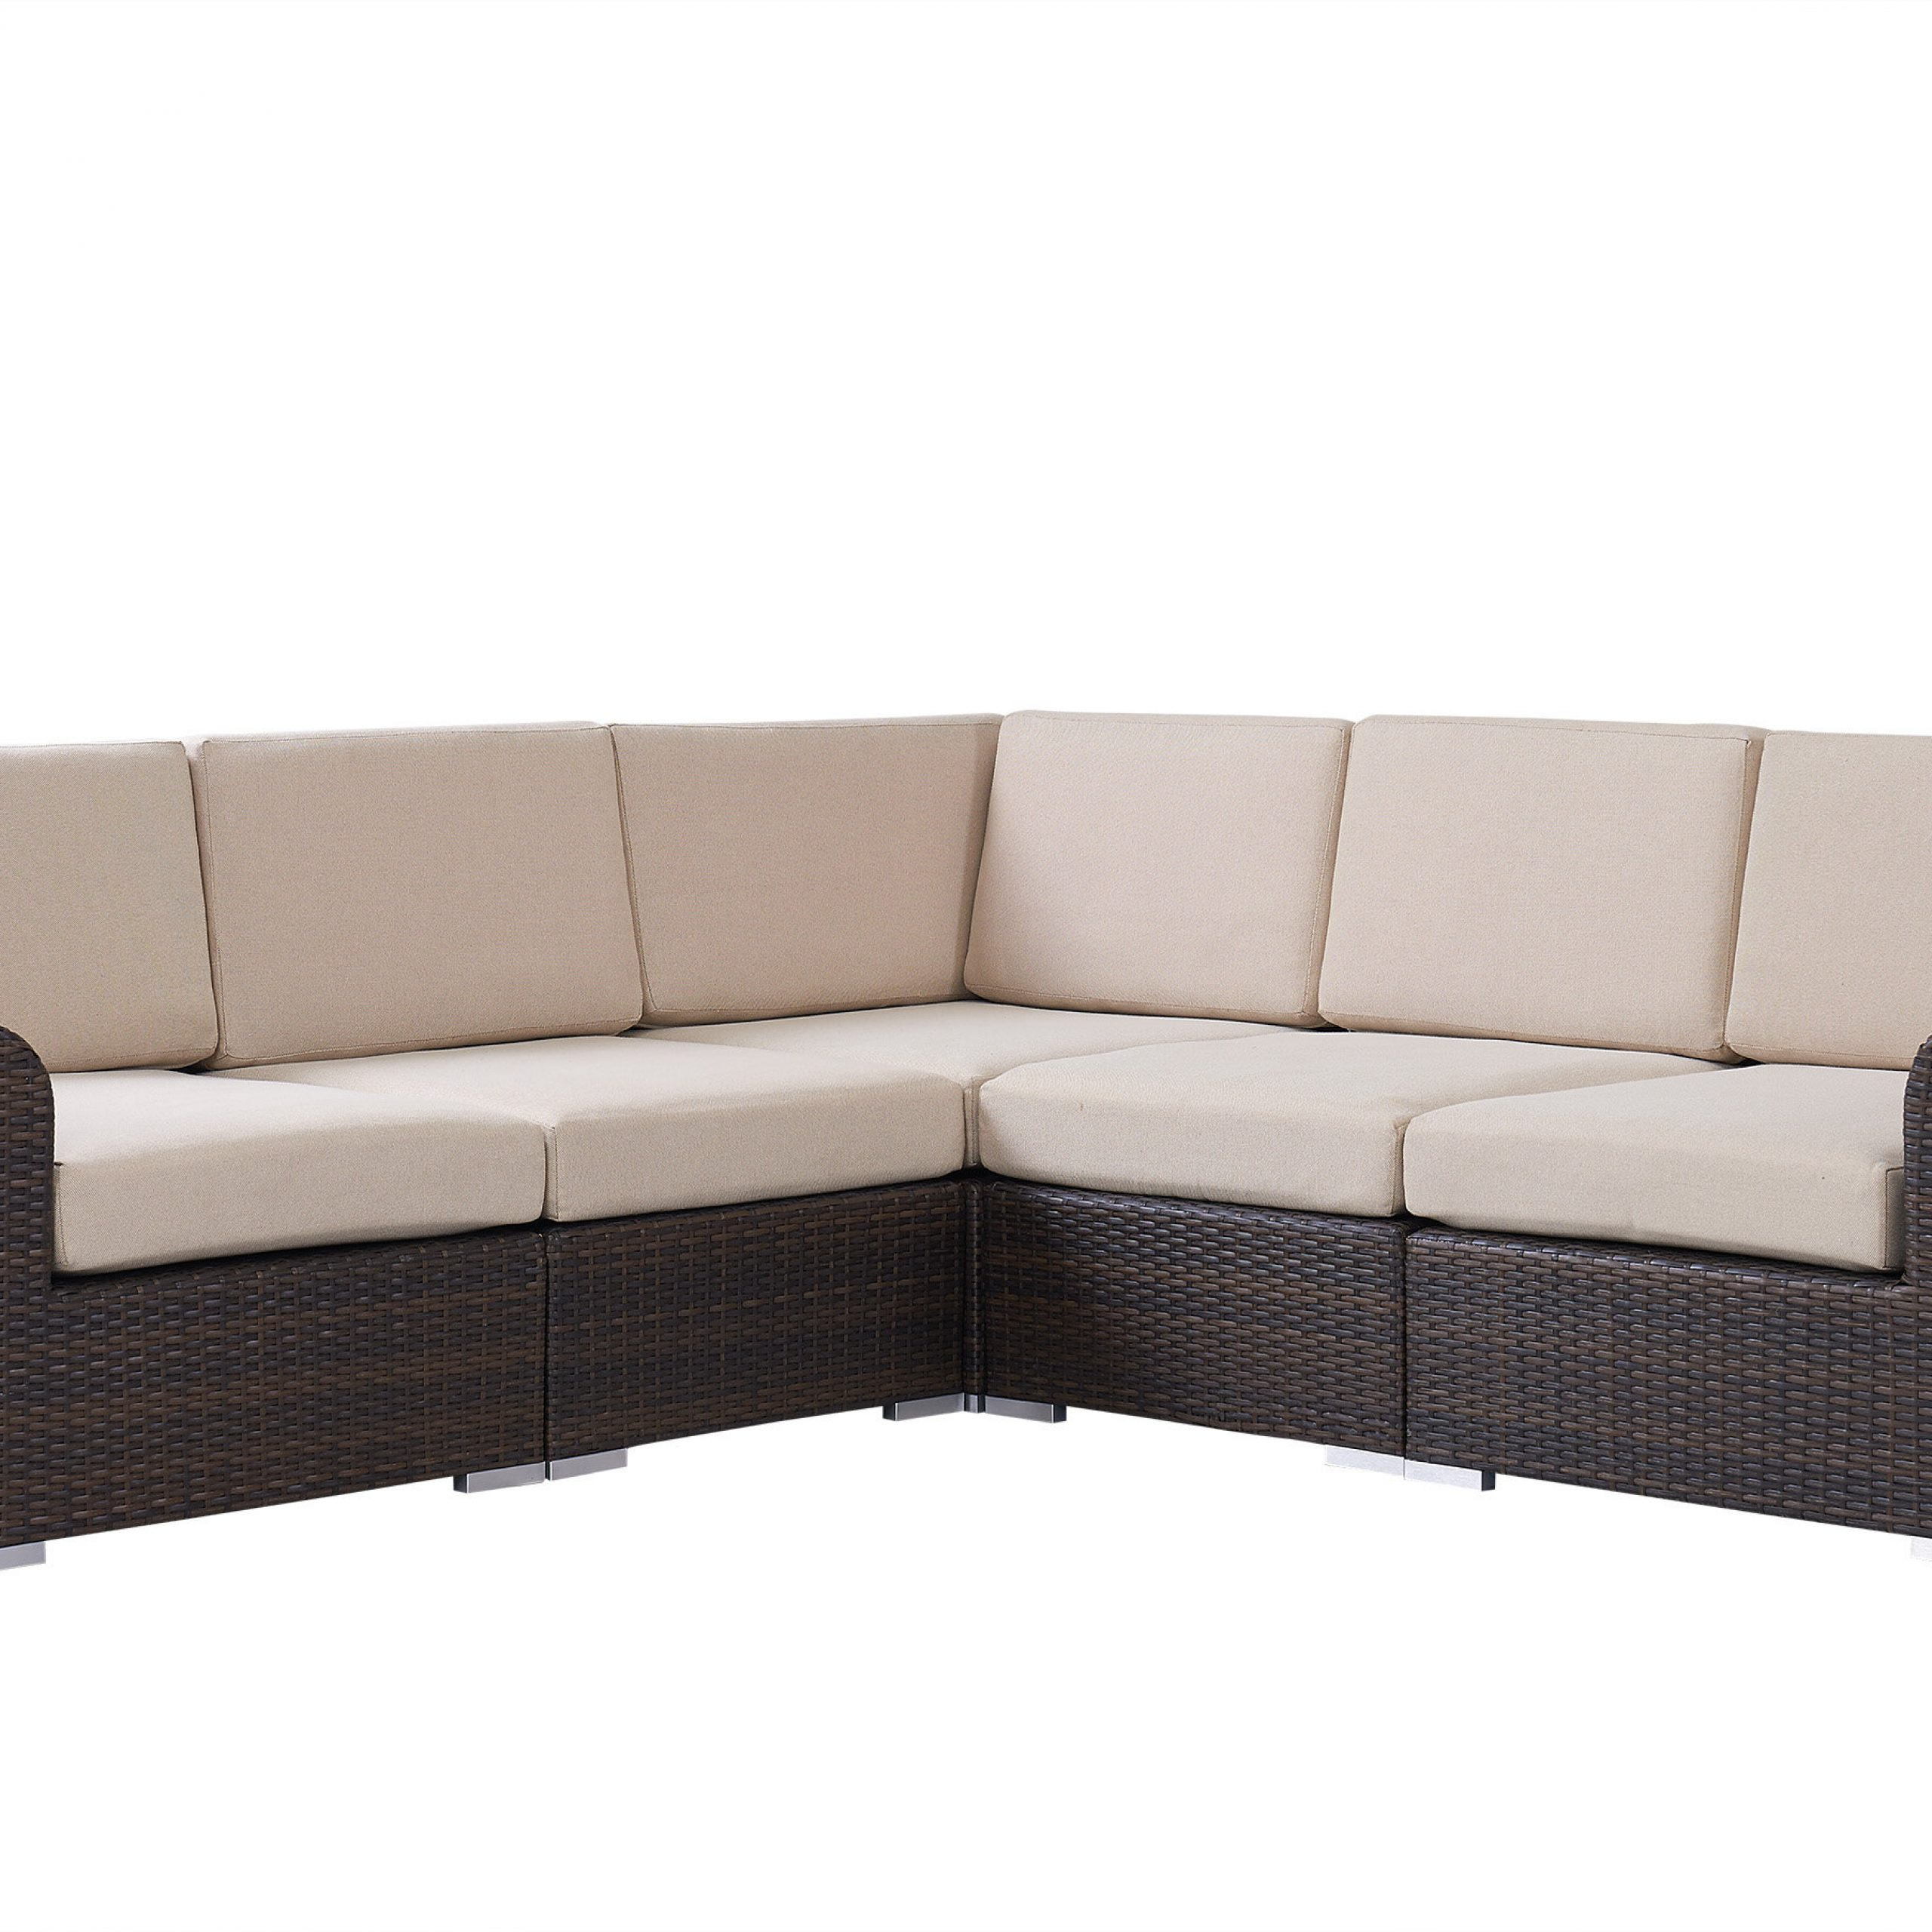 Letona Patio Sectionals With Cushions Inside Recent Brookhaven Patio Sectional With Cushions (Gallery 8 of 25)